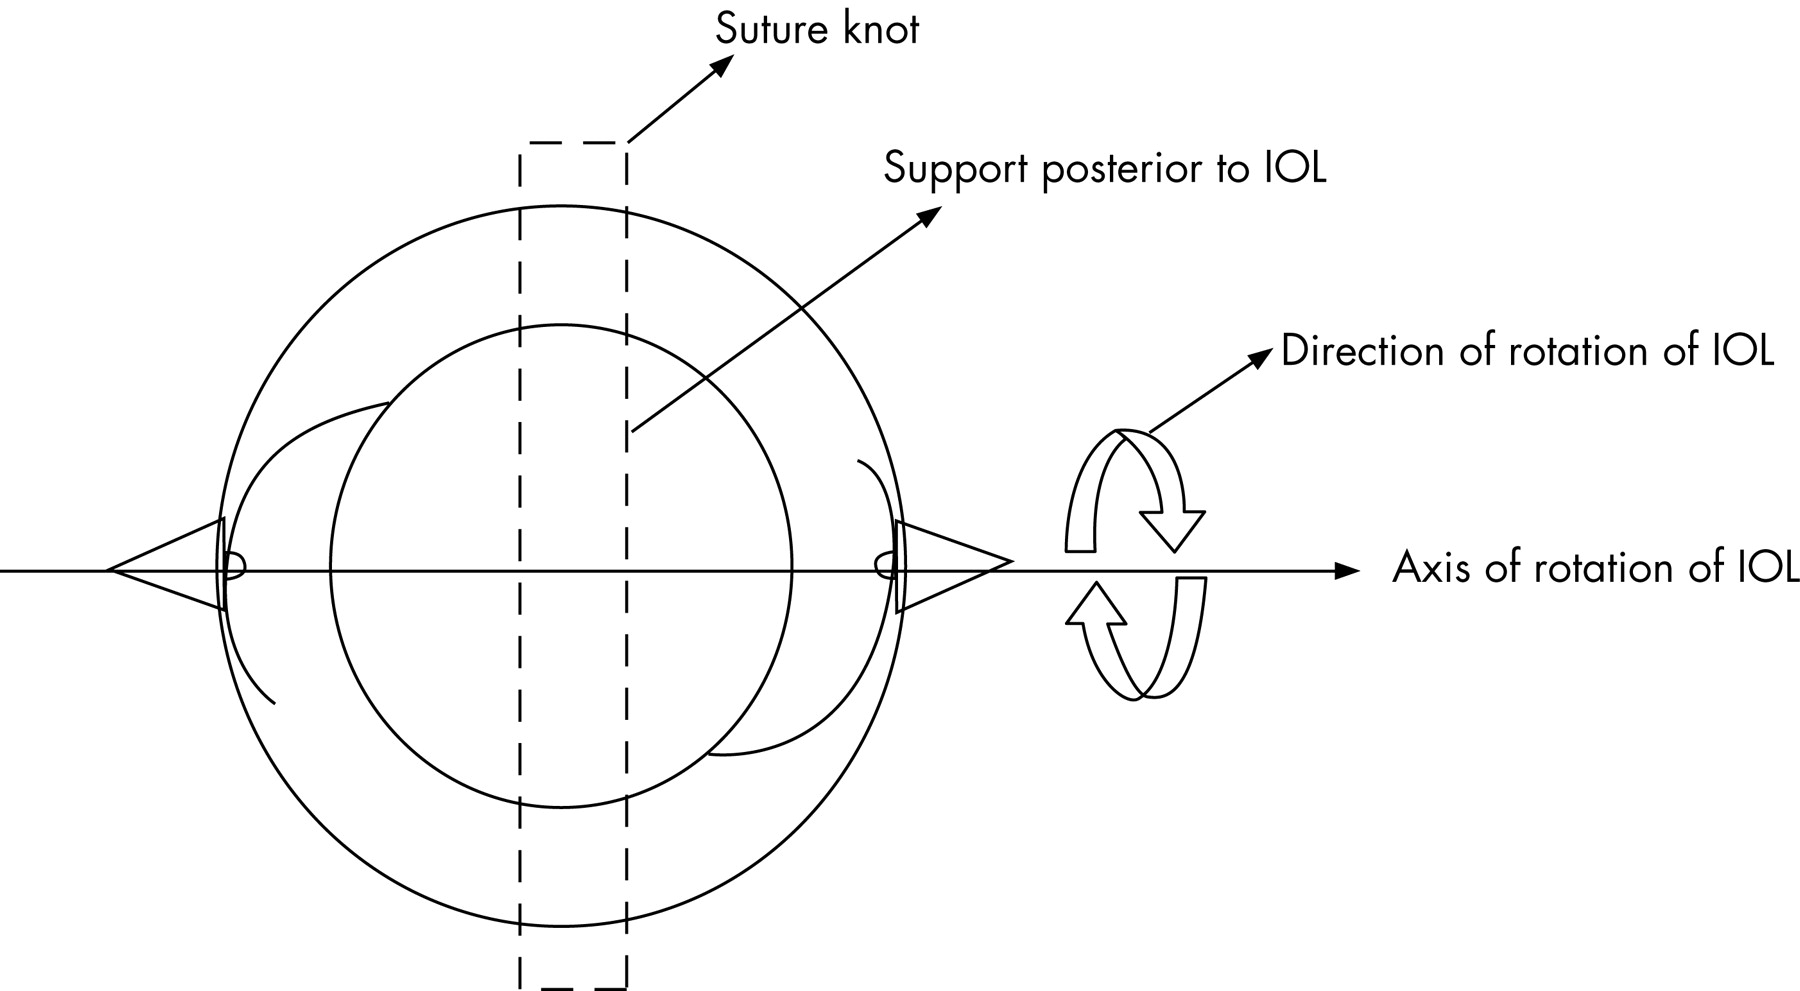 Management Of Intraoperative Tilting Of The Scleral